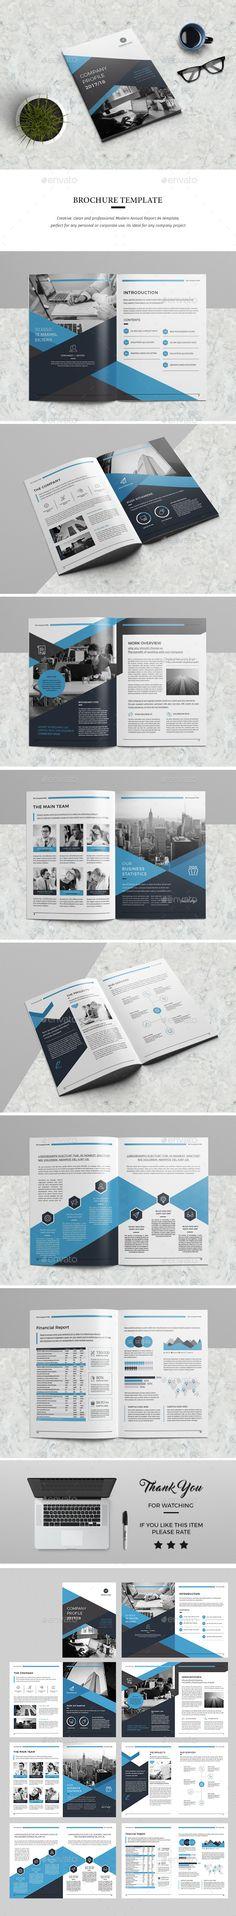 Dalemen Annual Report Annual reports, Template and Brochures - business annual report template